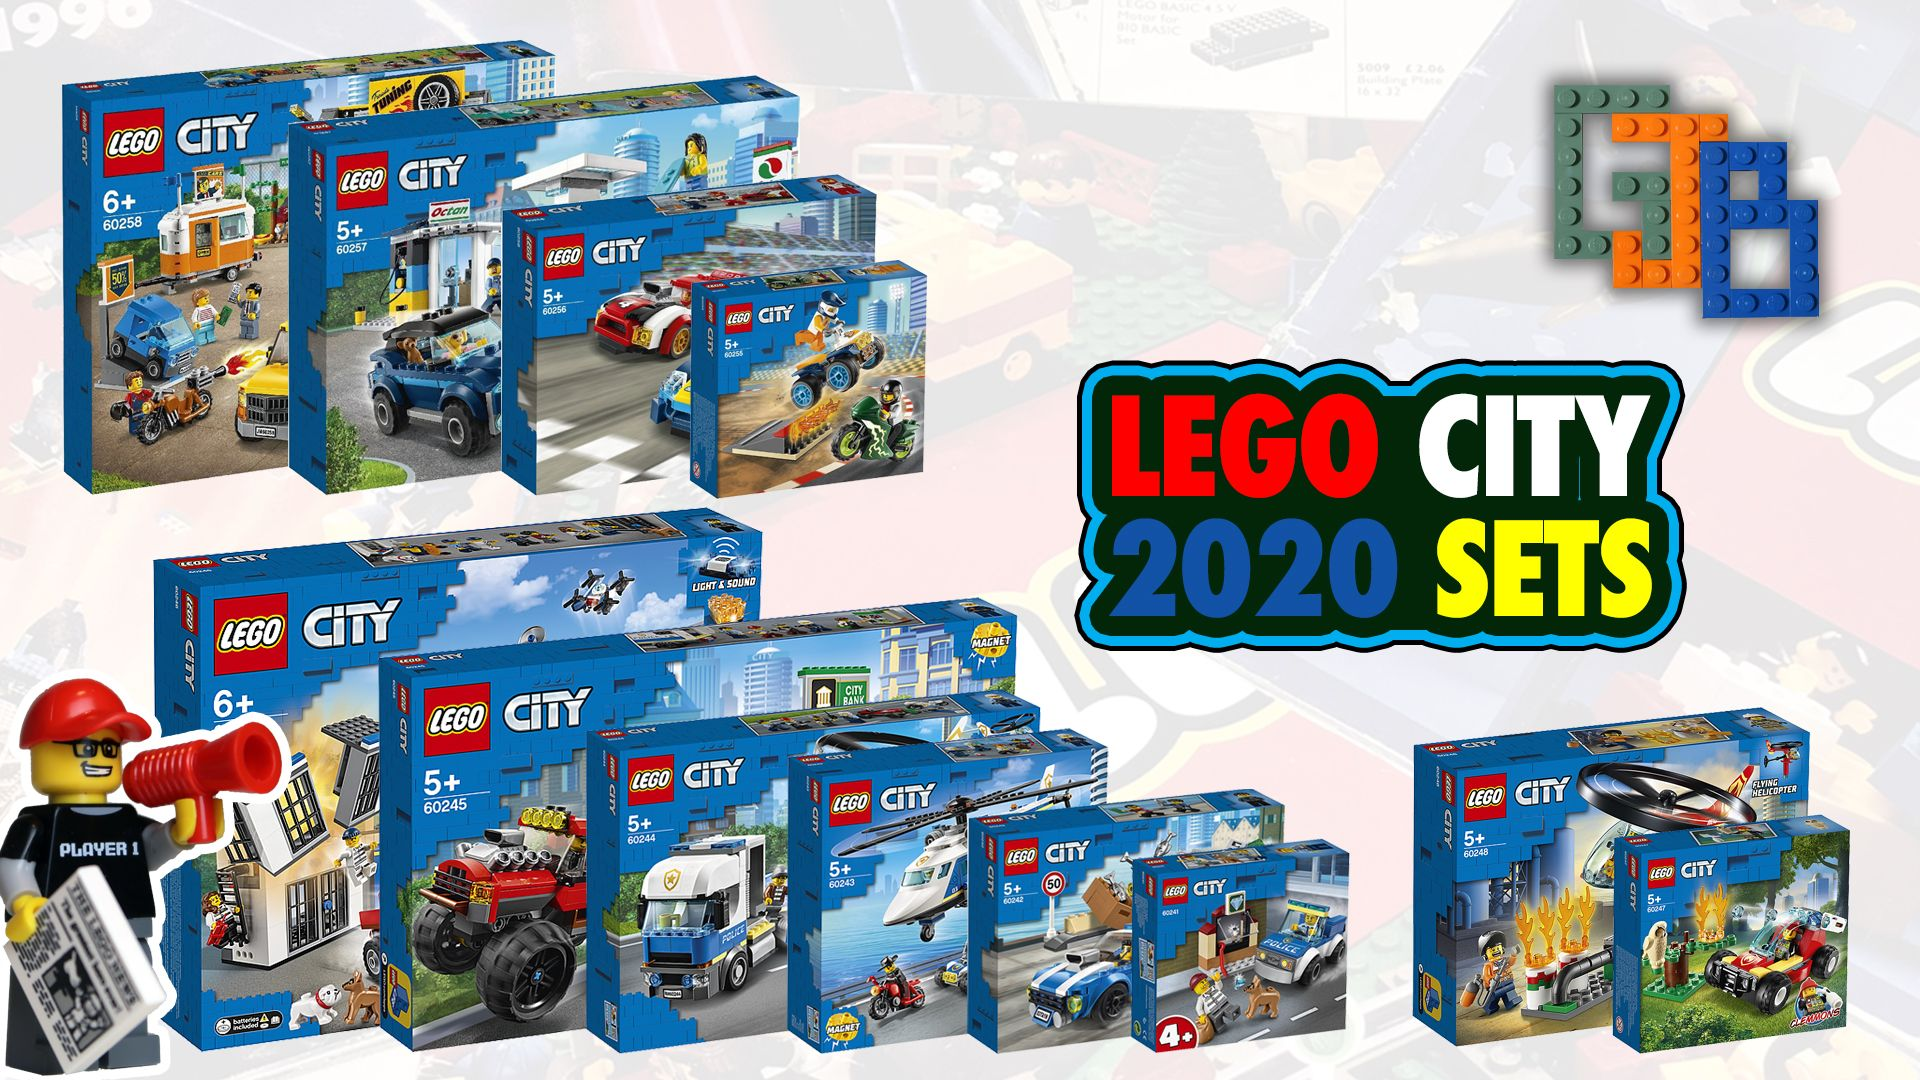 New Lego City 2020 Sets My Thoughts On All The Sets So Far In 2020 Lego City Lego News Lego